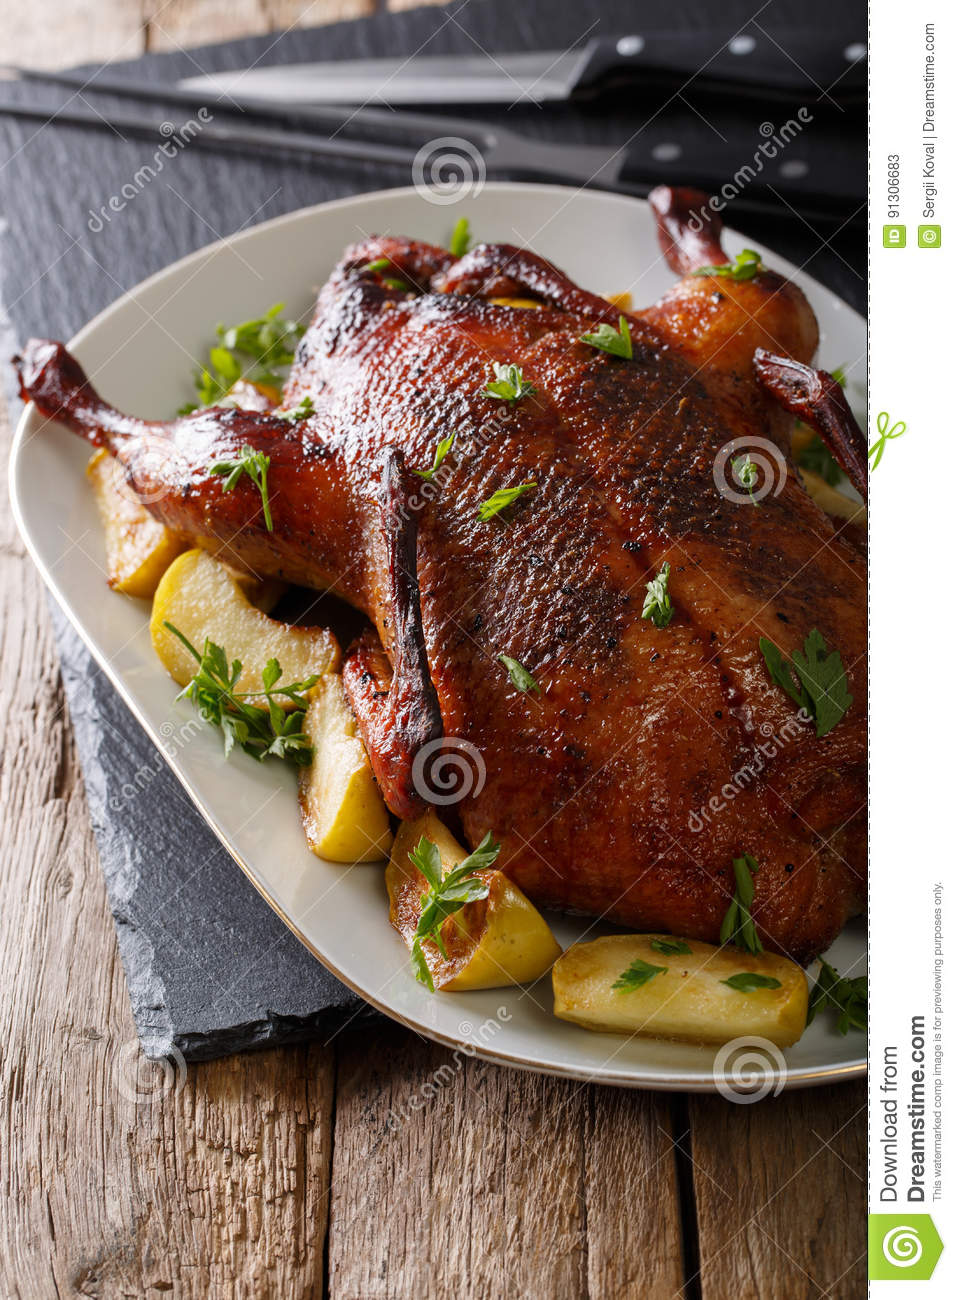 How to cook a duck with apples 6